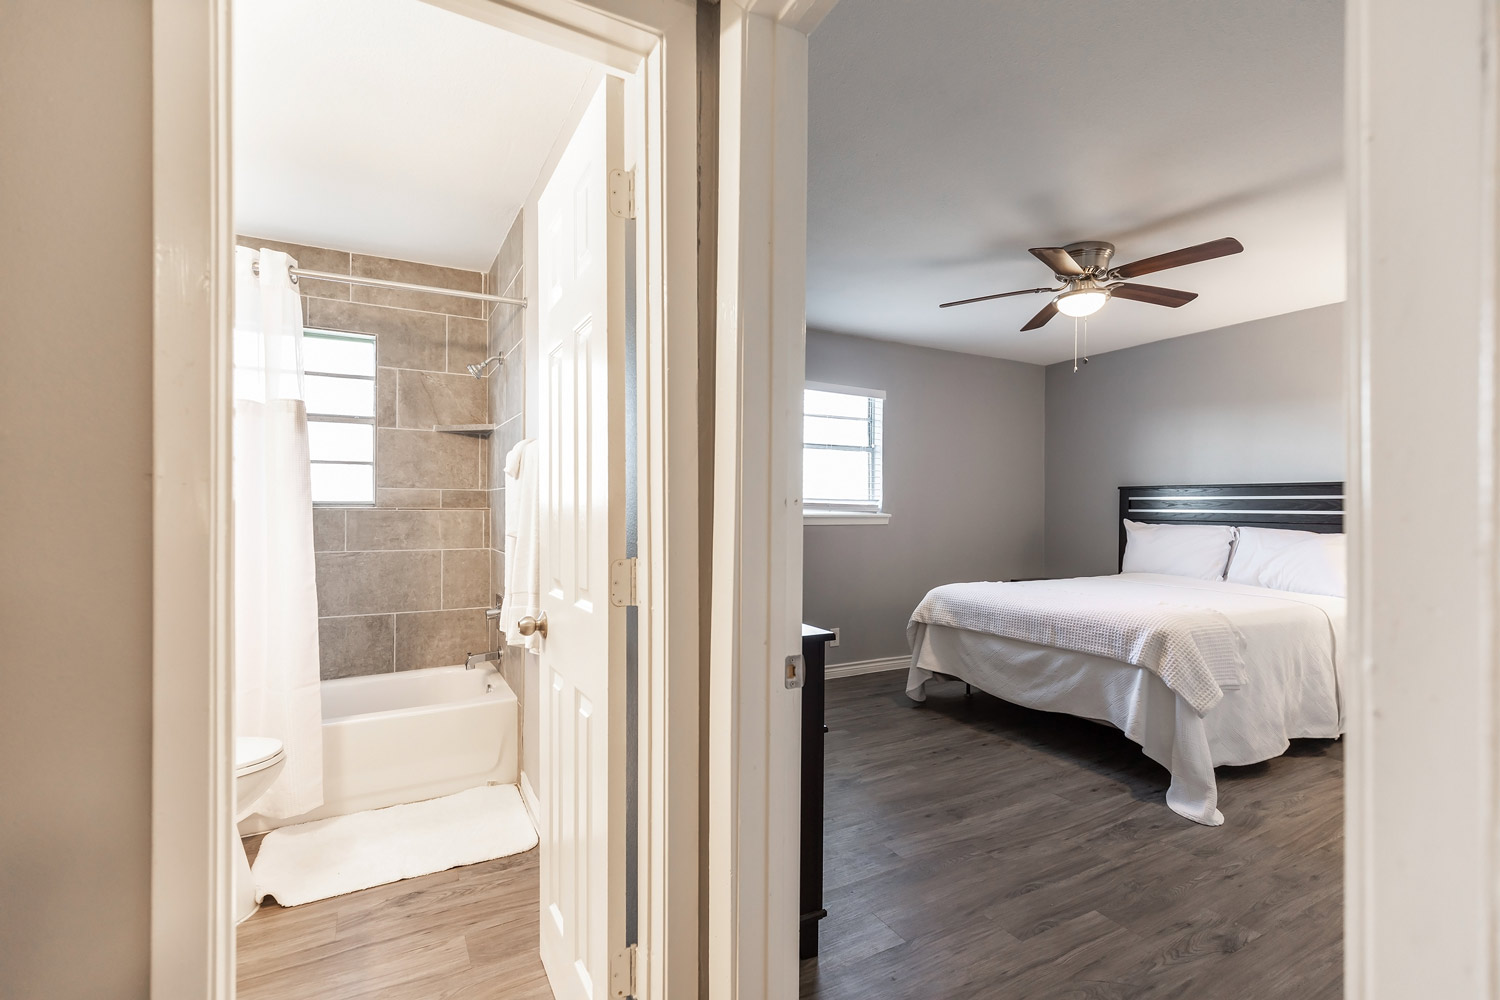 Bedroom with Ceiling Fan at The Five Points at Texas Apartments in Texas City, Texas